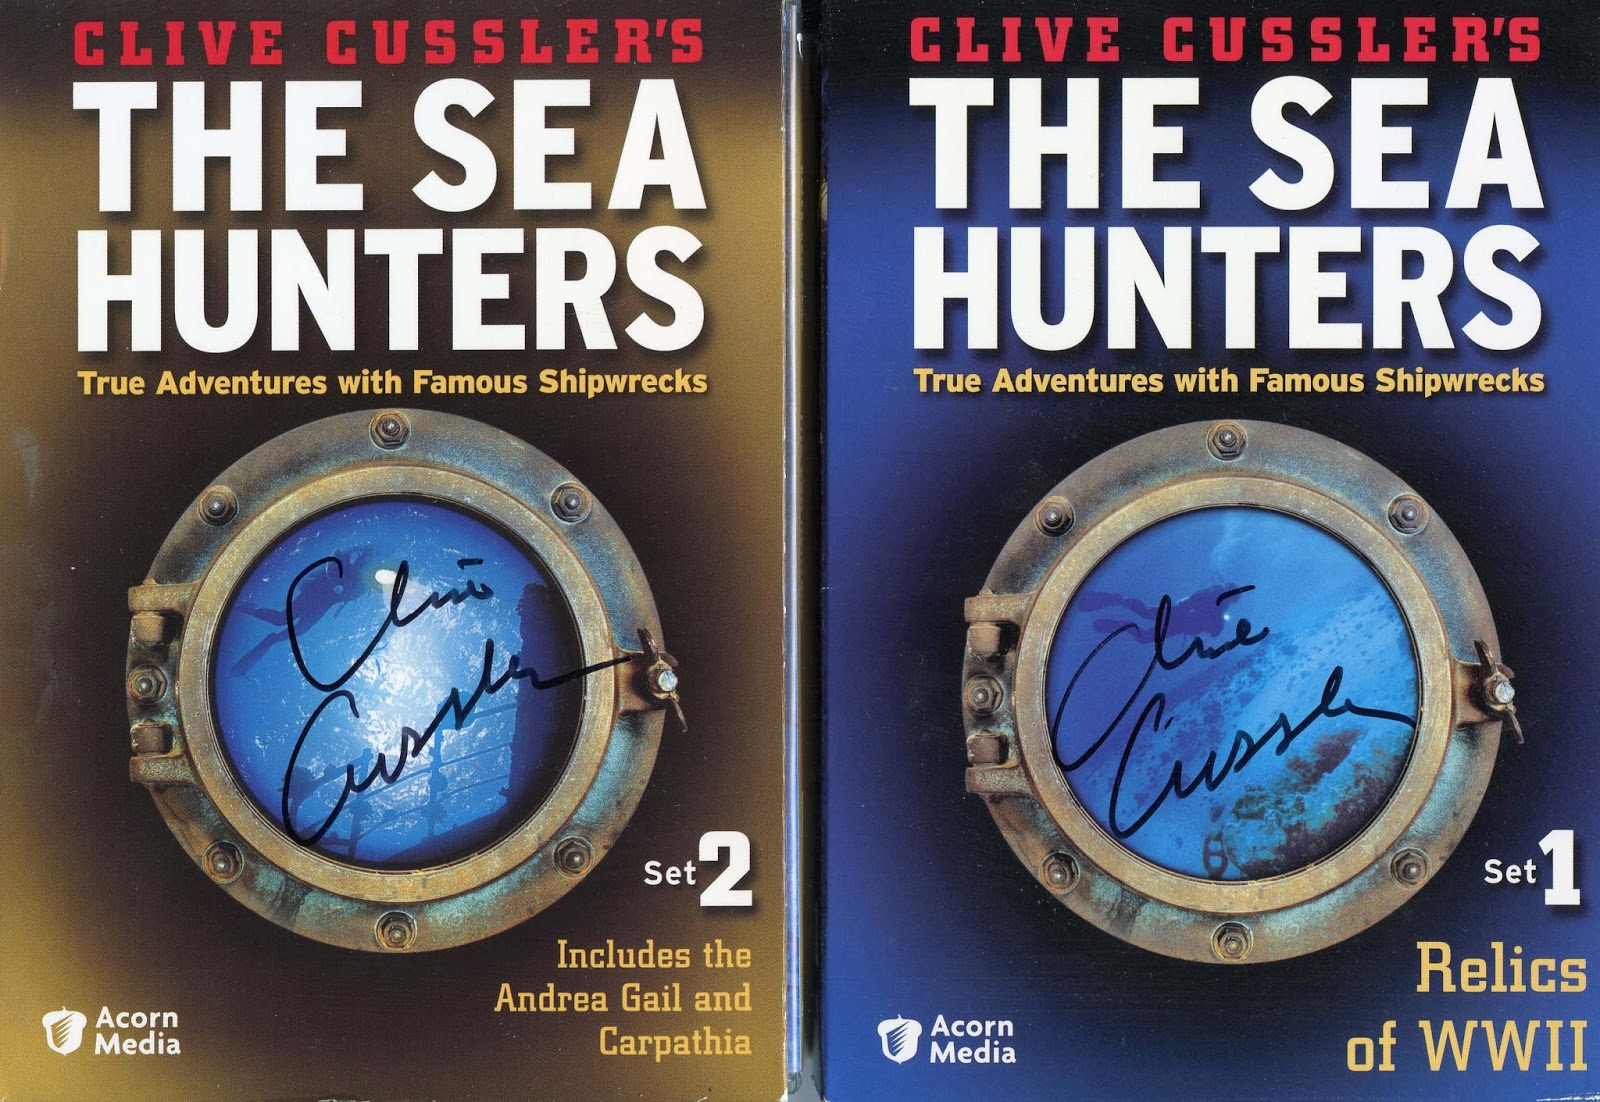 a biography of clive cussler Clive cussler is the author or coauthor of over fifty previous books in five bestselling series, including dirk pitt®, numa® files, oregon® files, isaac bell, and.